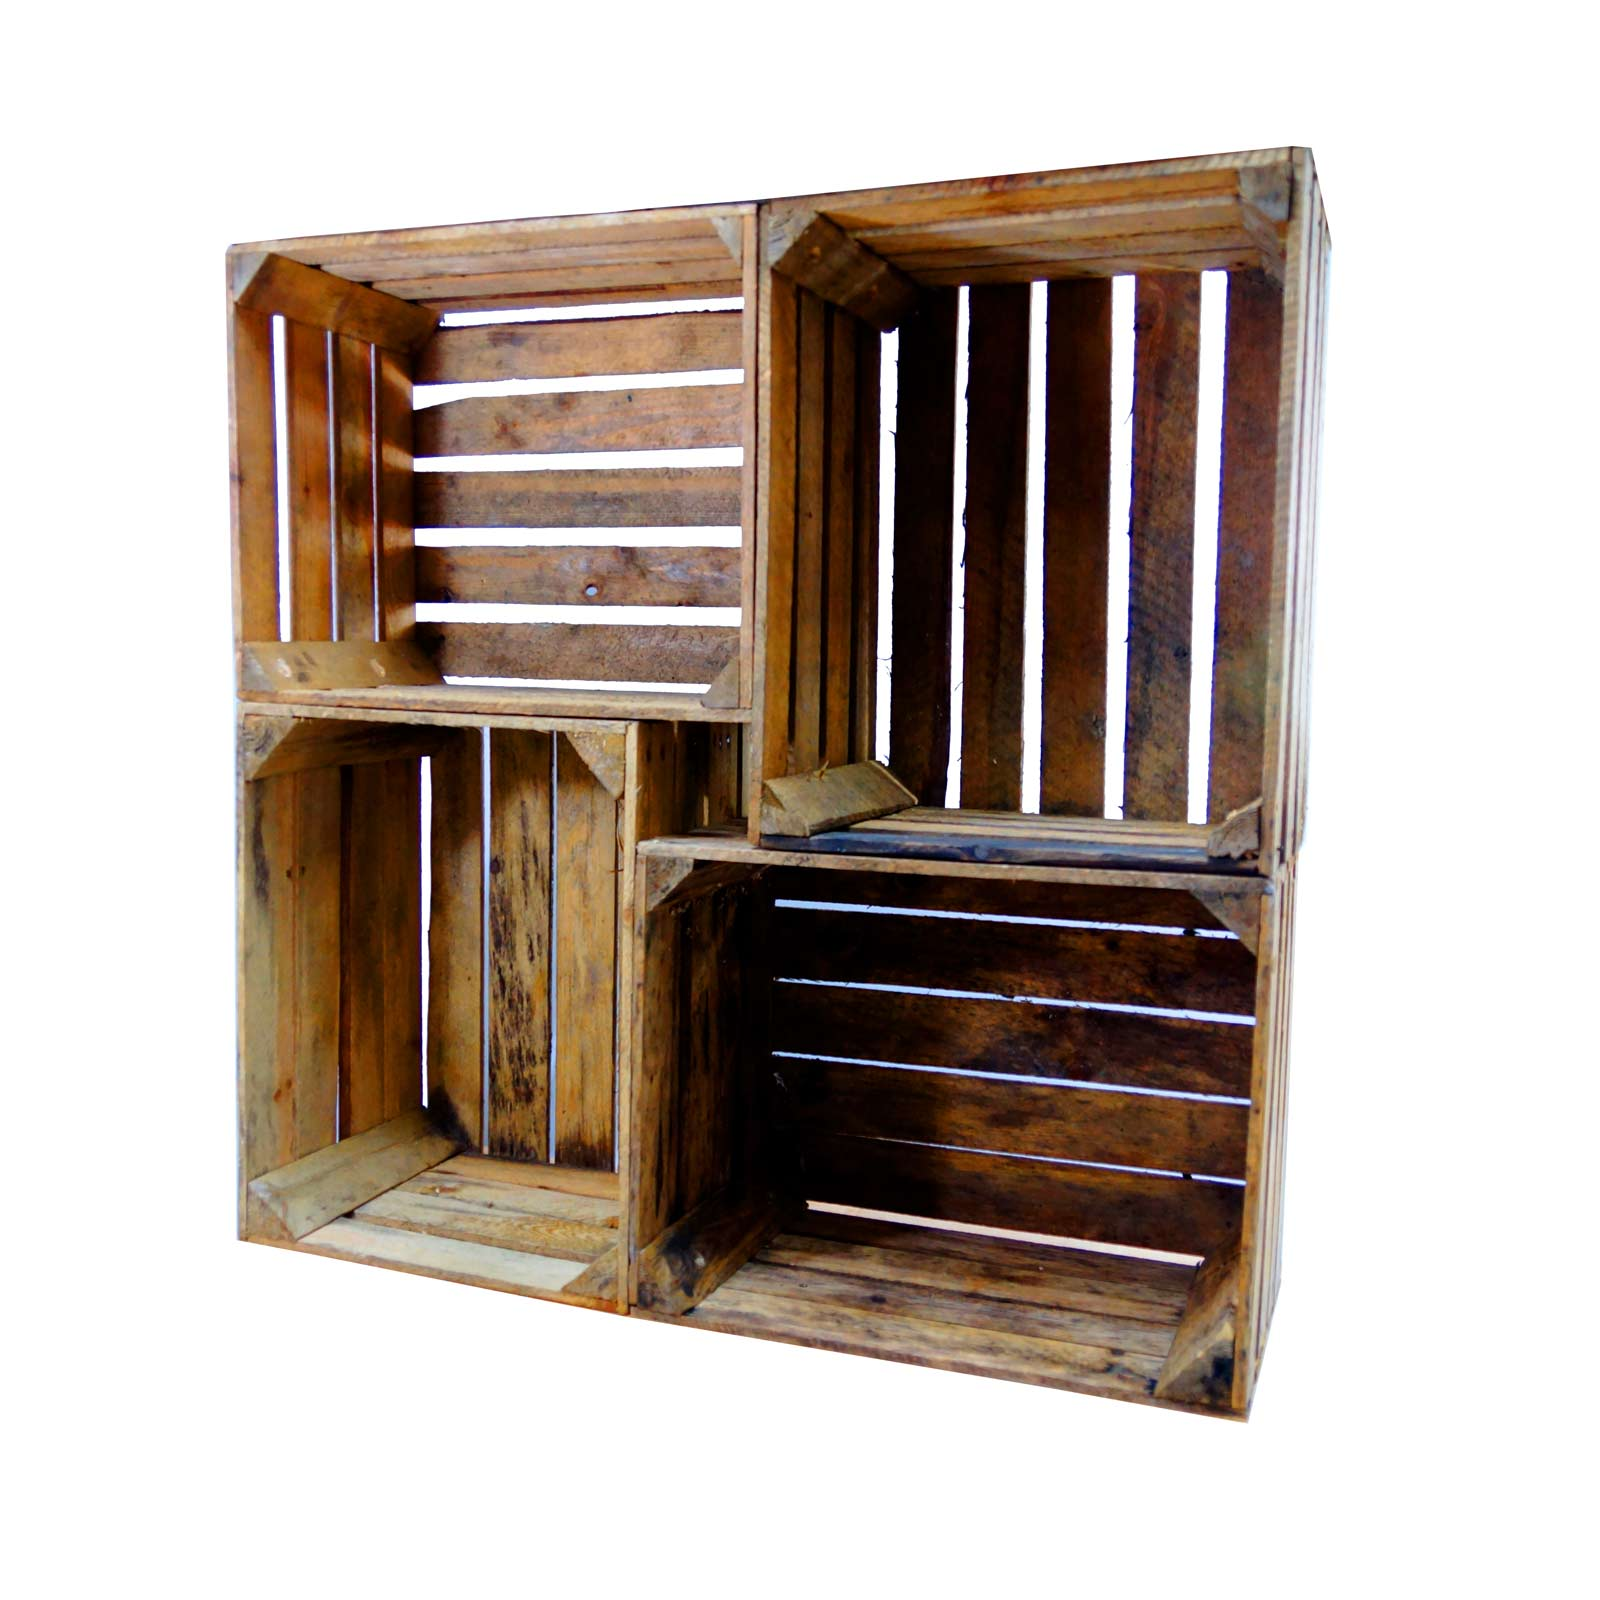 Superb Rustic Wooden Crate Display Shelving Unit Cr8S3 Home Interior And Landscaping Oversignezvosmurscom